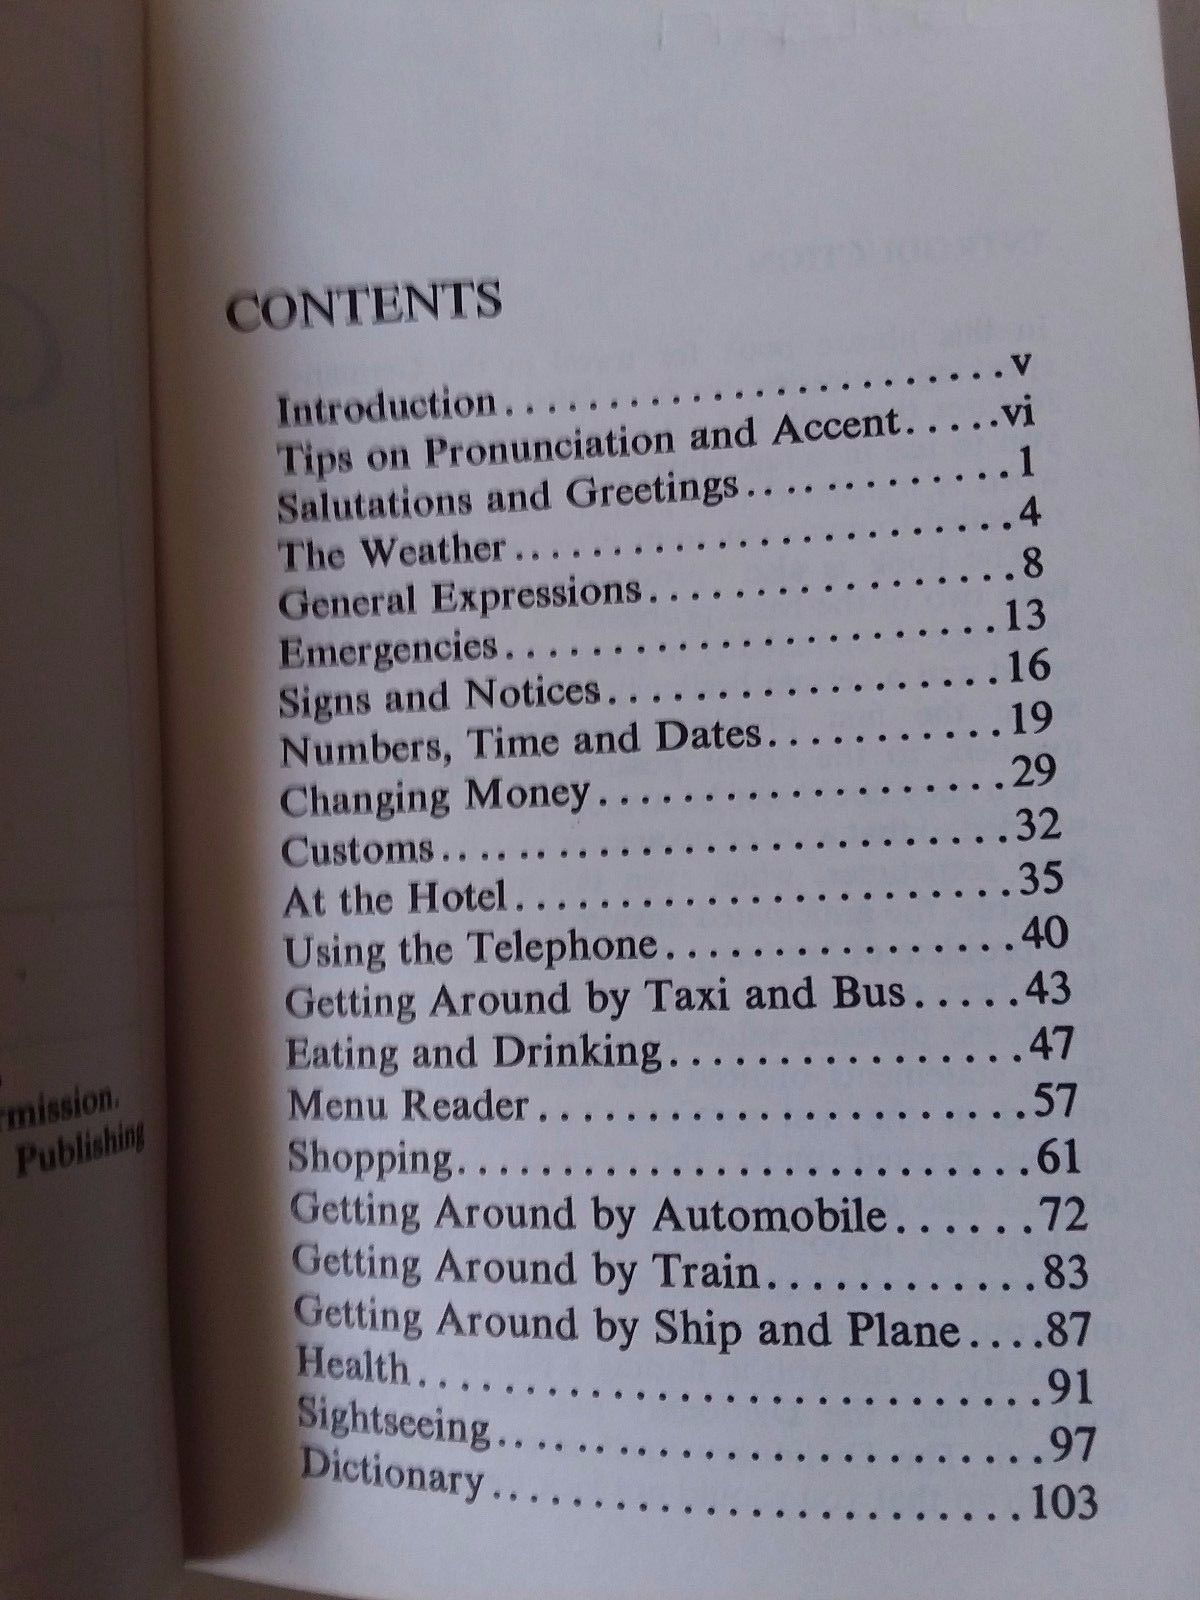 Grosset's German Phrase Book and Dictionary and 13 similar items